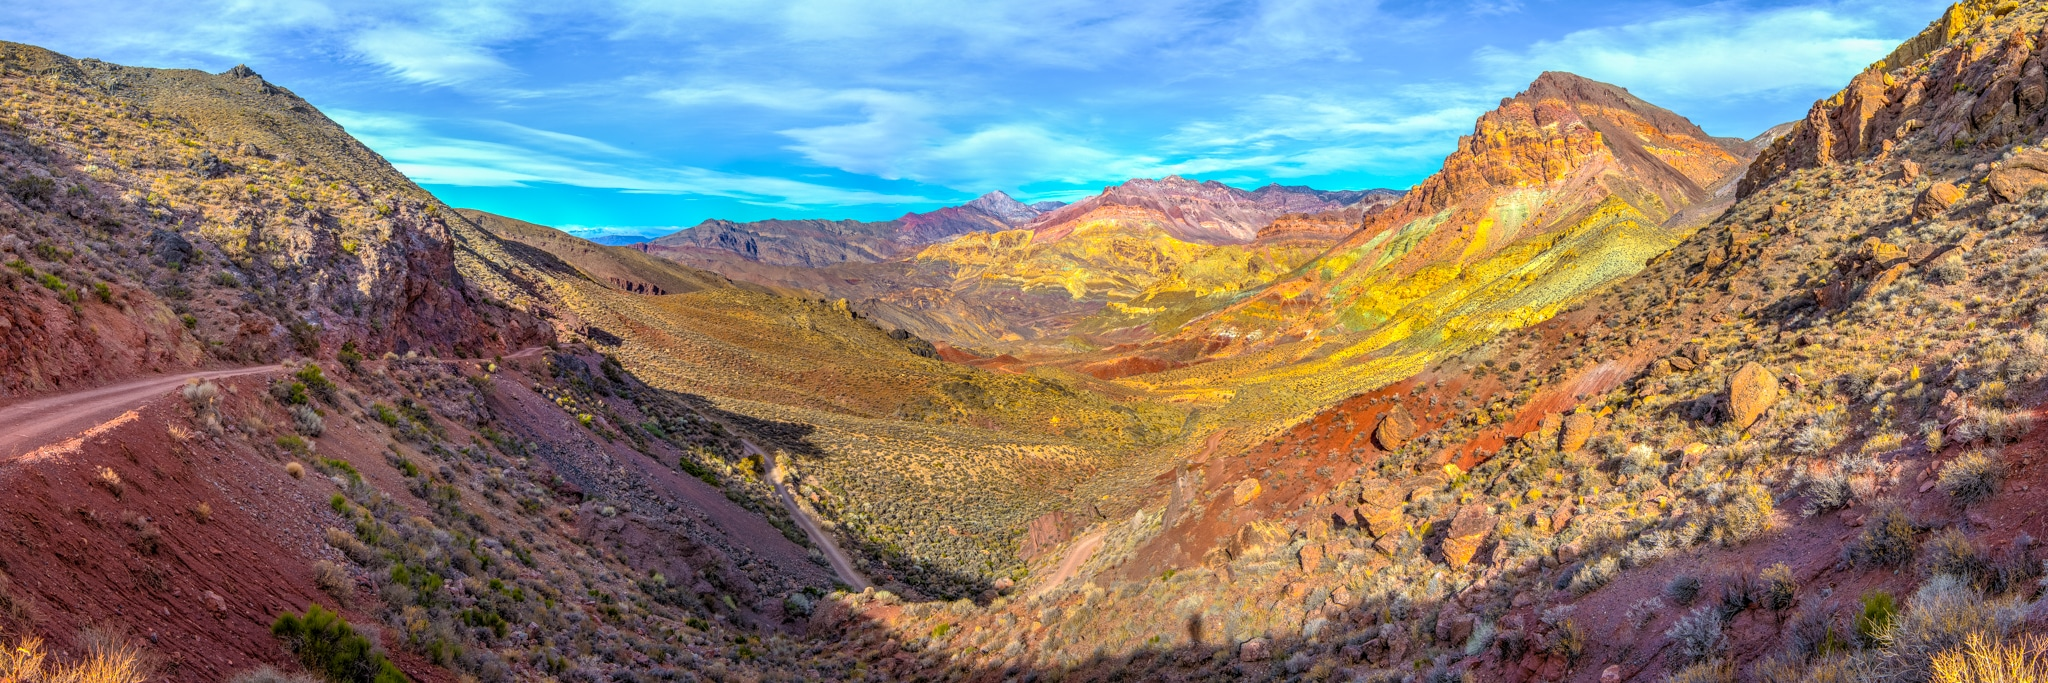 From Red Pass, the the road winds down into the upper reaches of Titus Canyon. The colorful strata is the Titus Canyon Formation, which is mostly sandstone and conglomerates. The dark banded strata in the distance is the Bonanza King Formation.